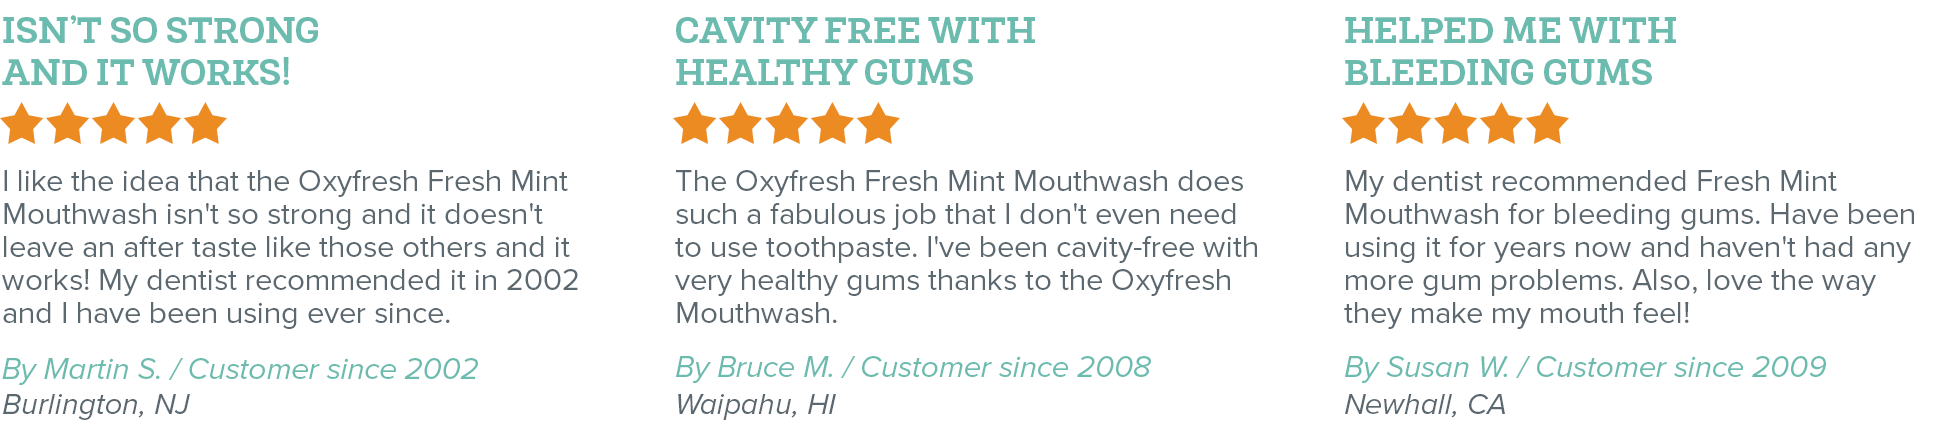 Oxyfresh - Eliminate Bad Breath - Fresh Breath Fresh Mint Mouthwash Reviews